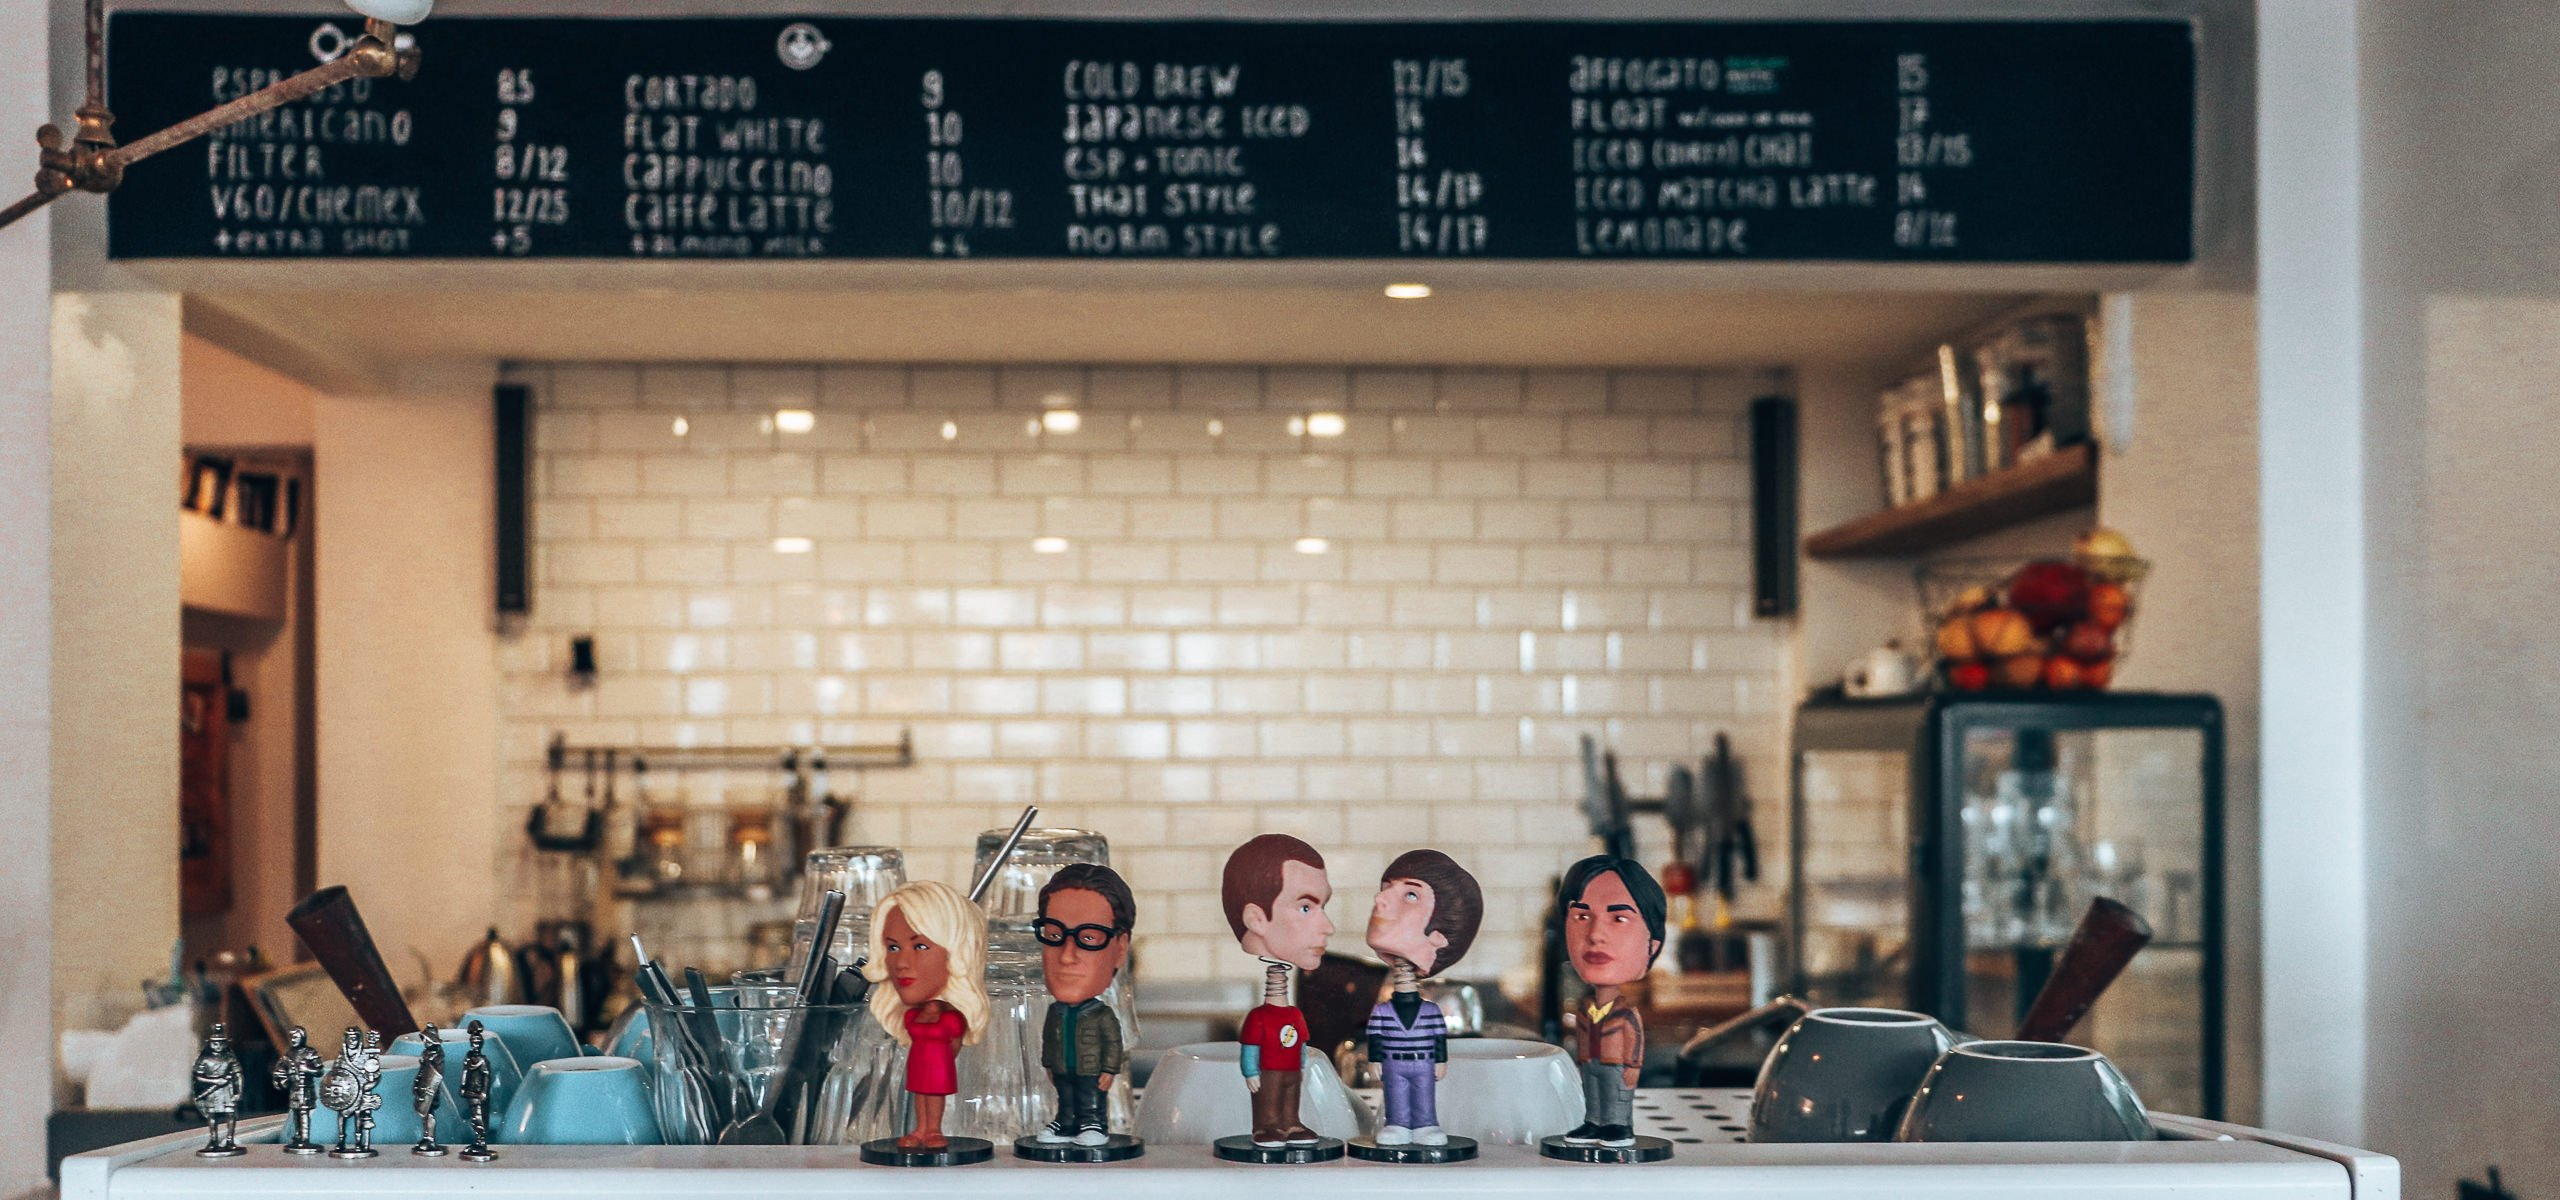 Bobblehead figurines atop the coffee machine at Norm Coffee, Istanbul, Turkey